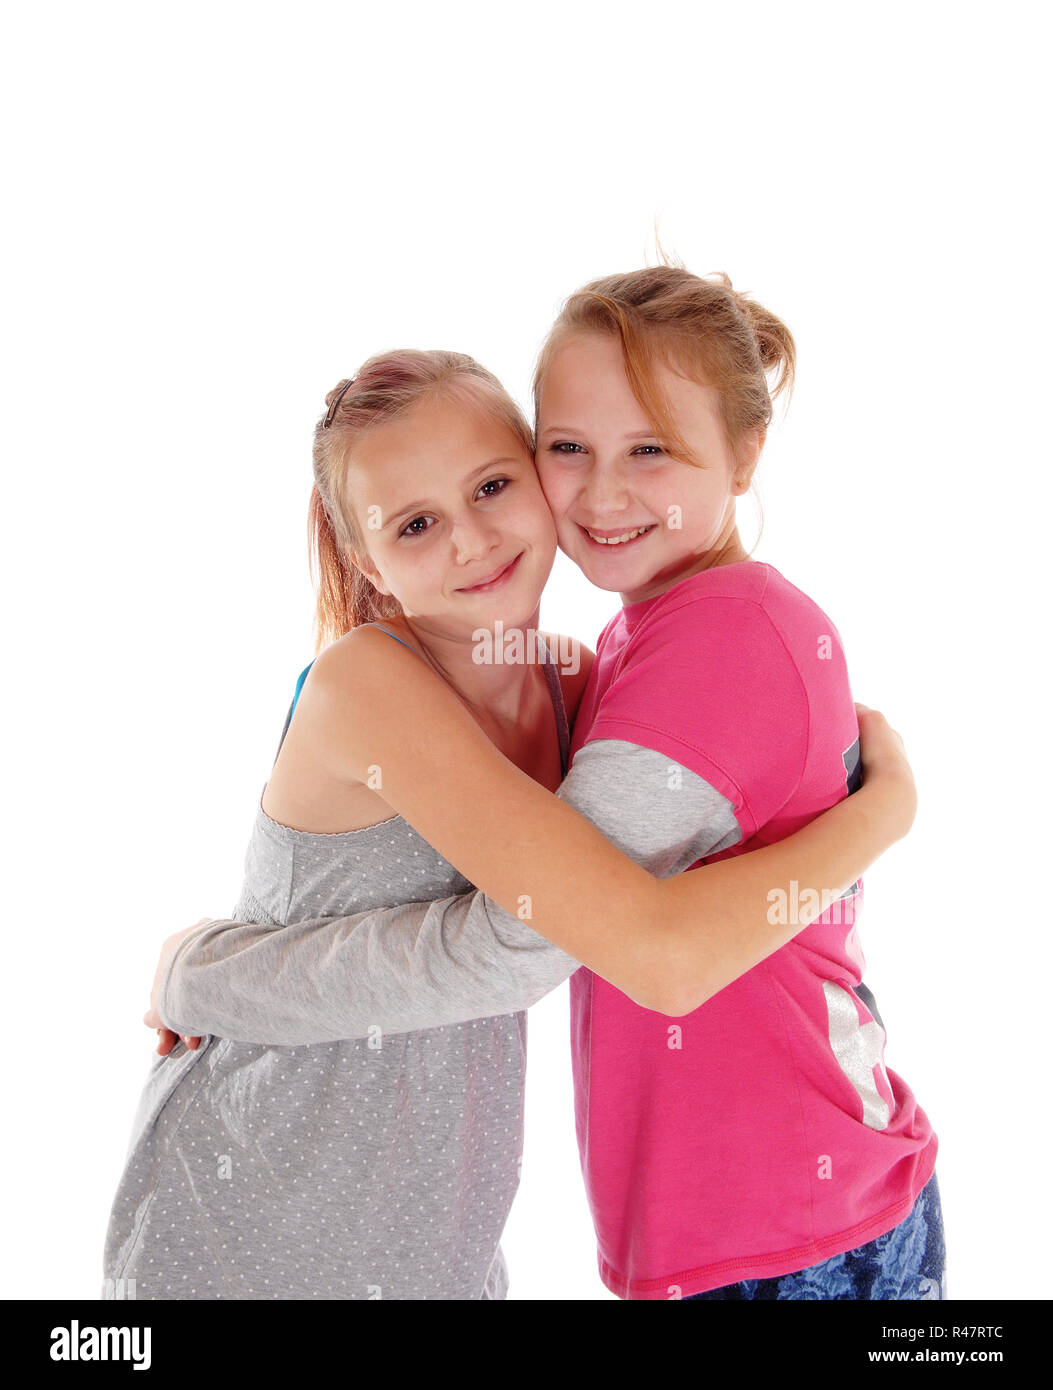 Smiling sisters hugging each other. - Stock Image